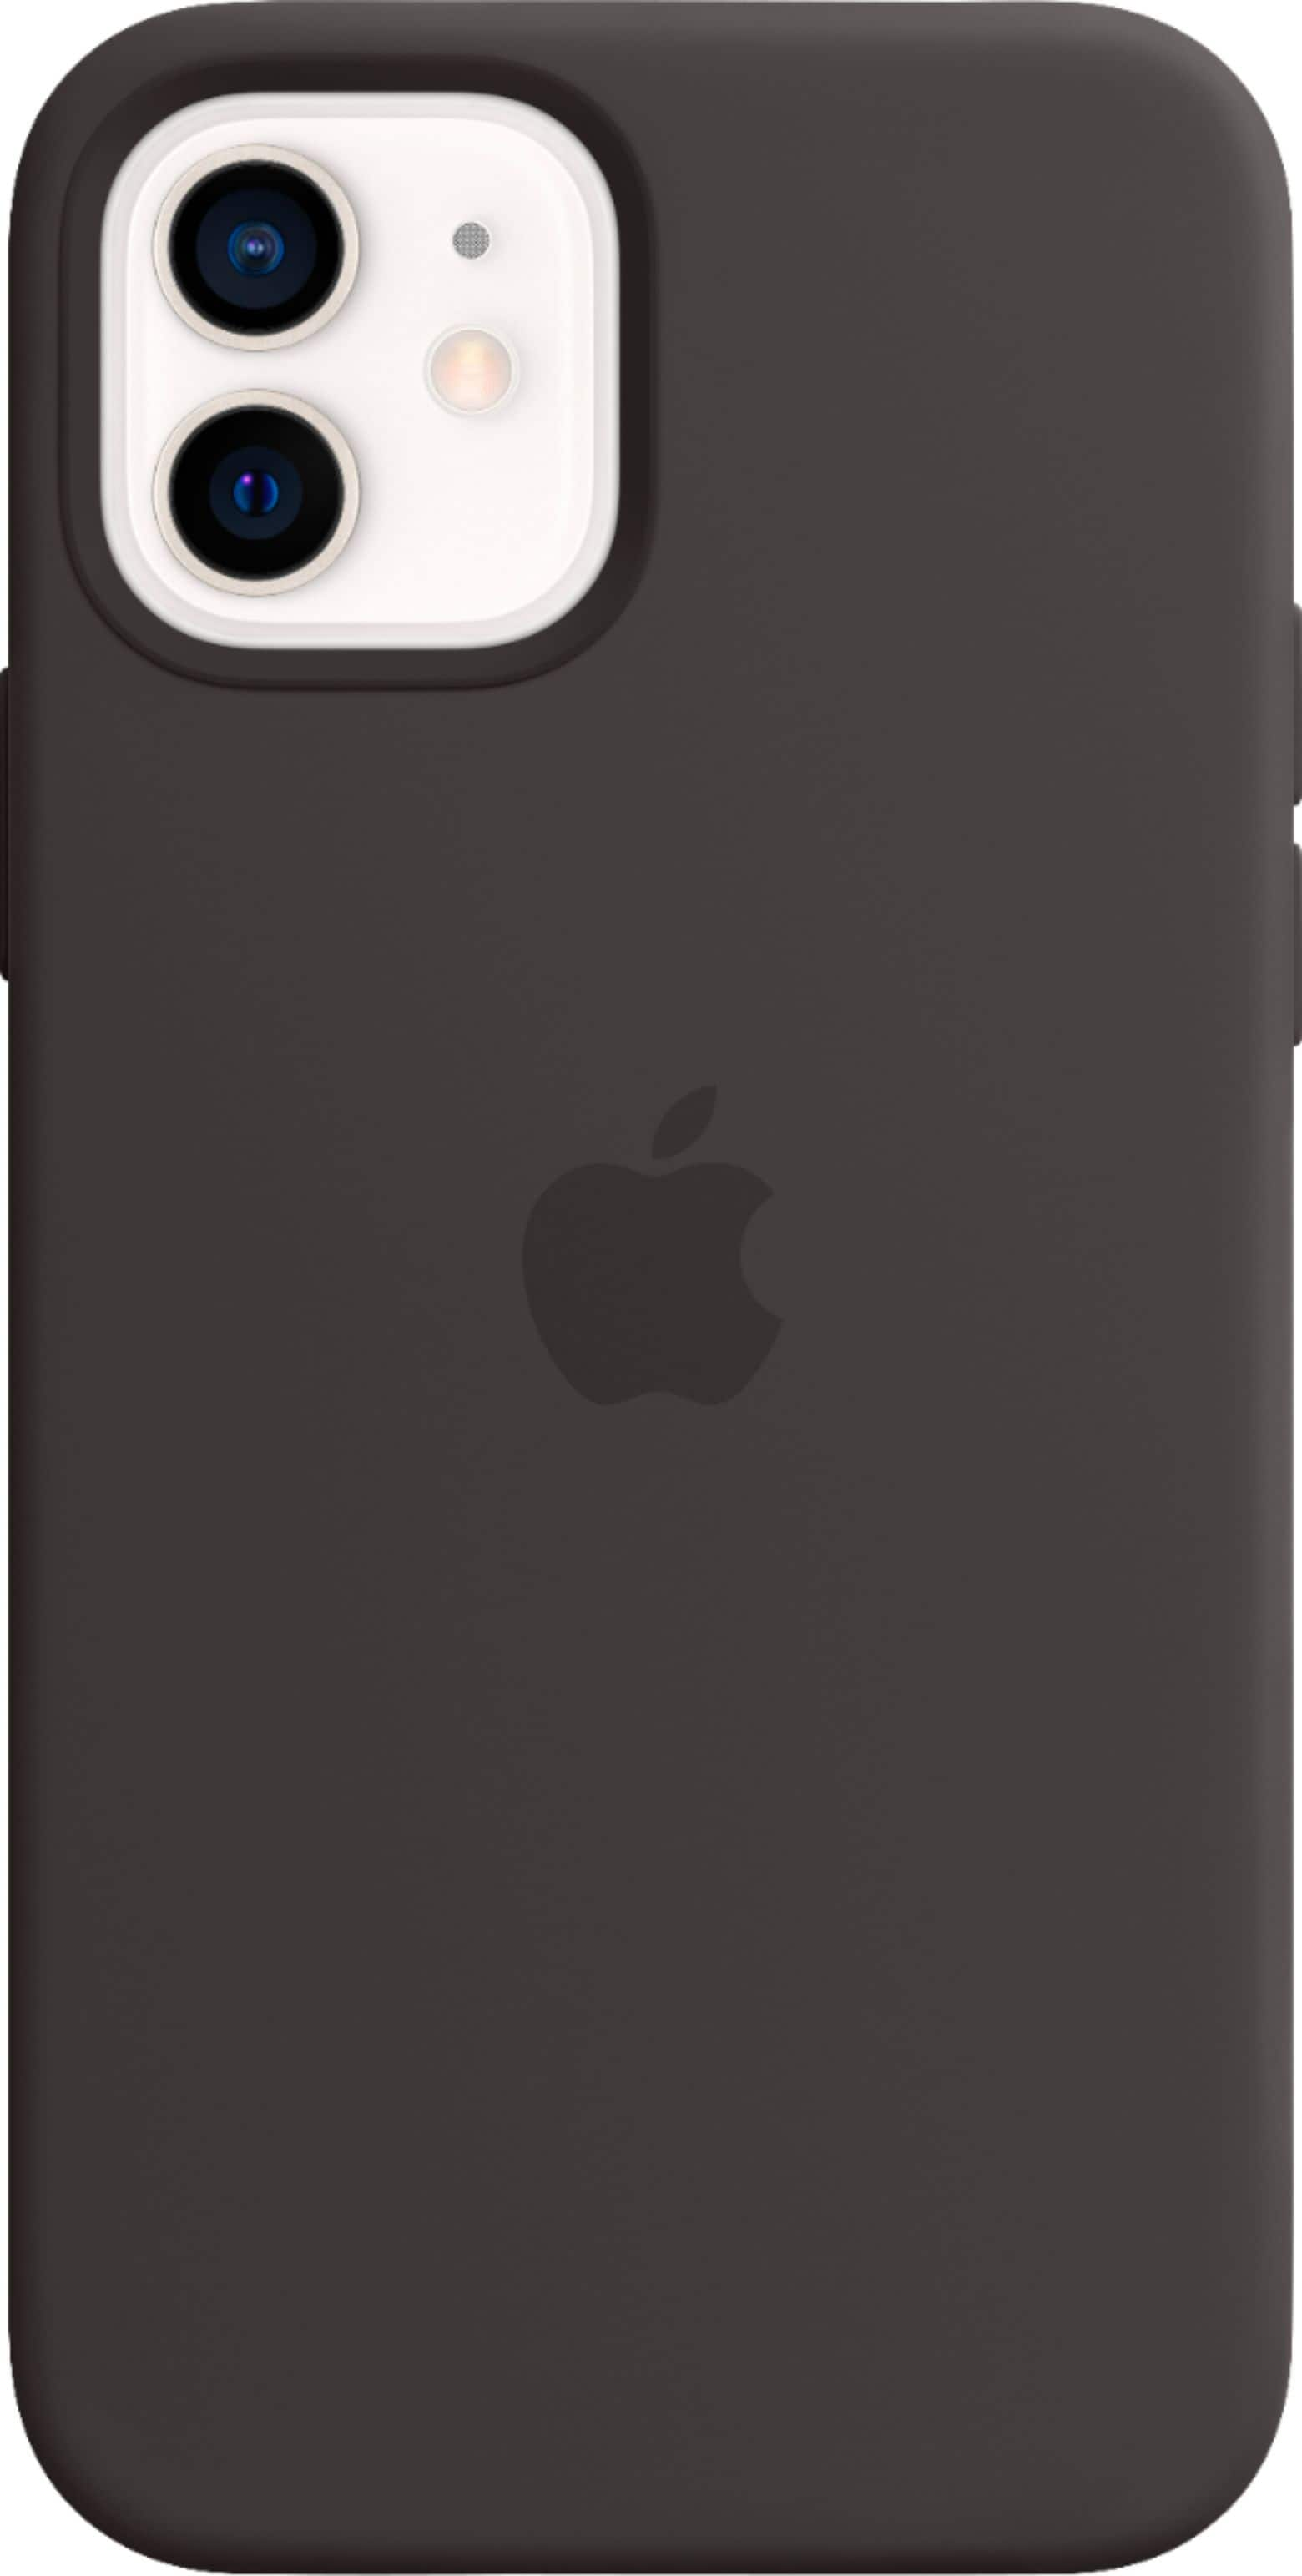 Apple iPhone 12 mini Silicone Case with MagSafe Black Best Buy - $19.99